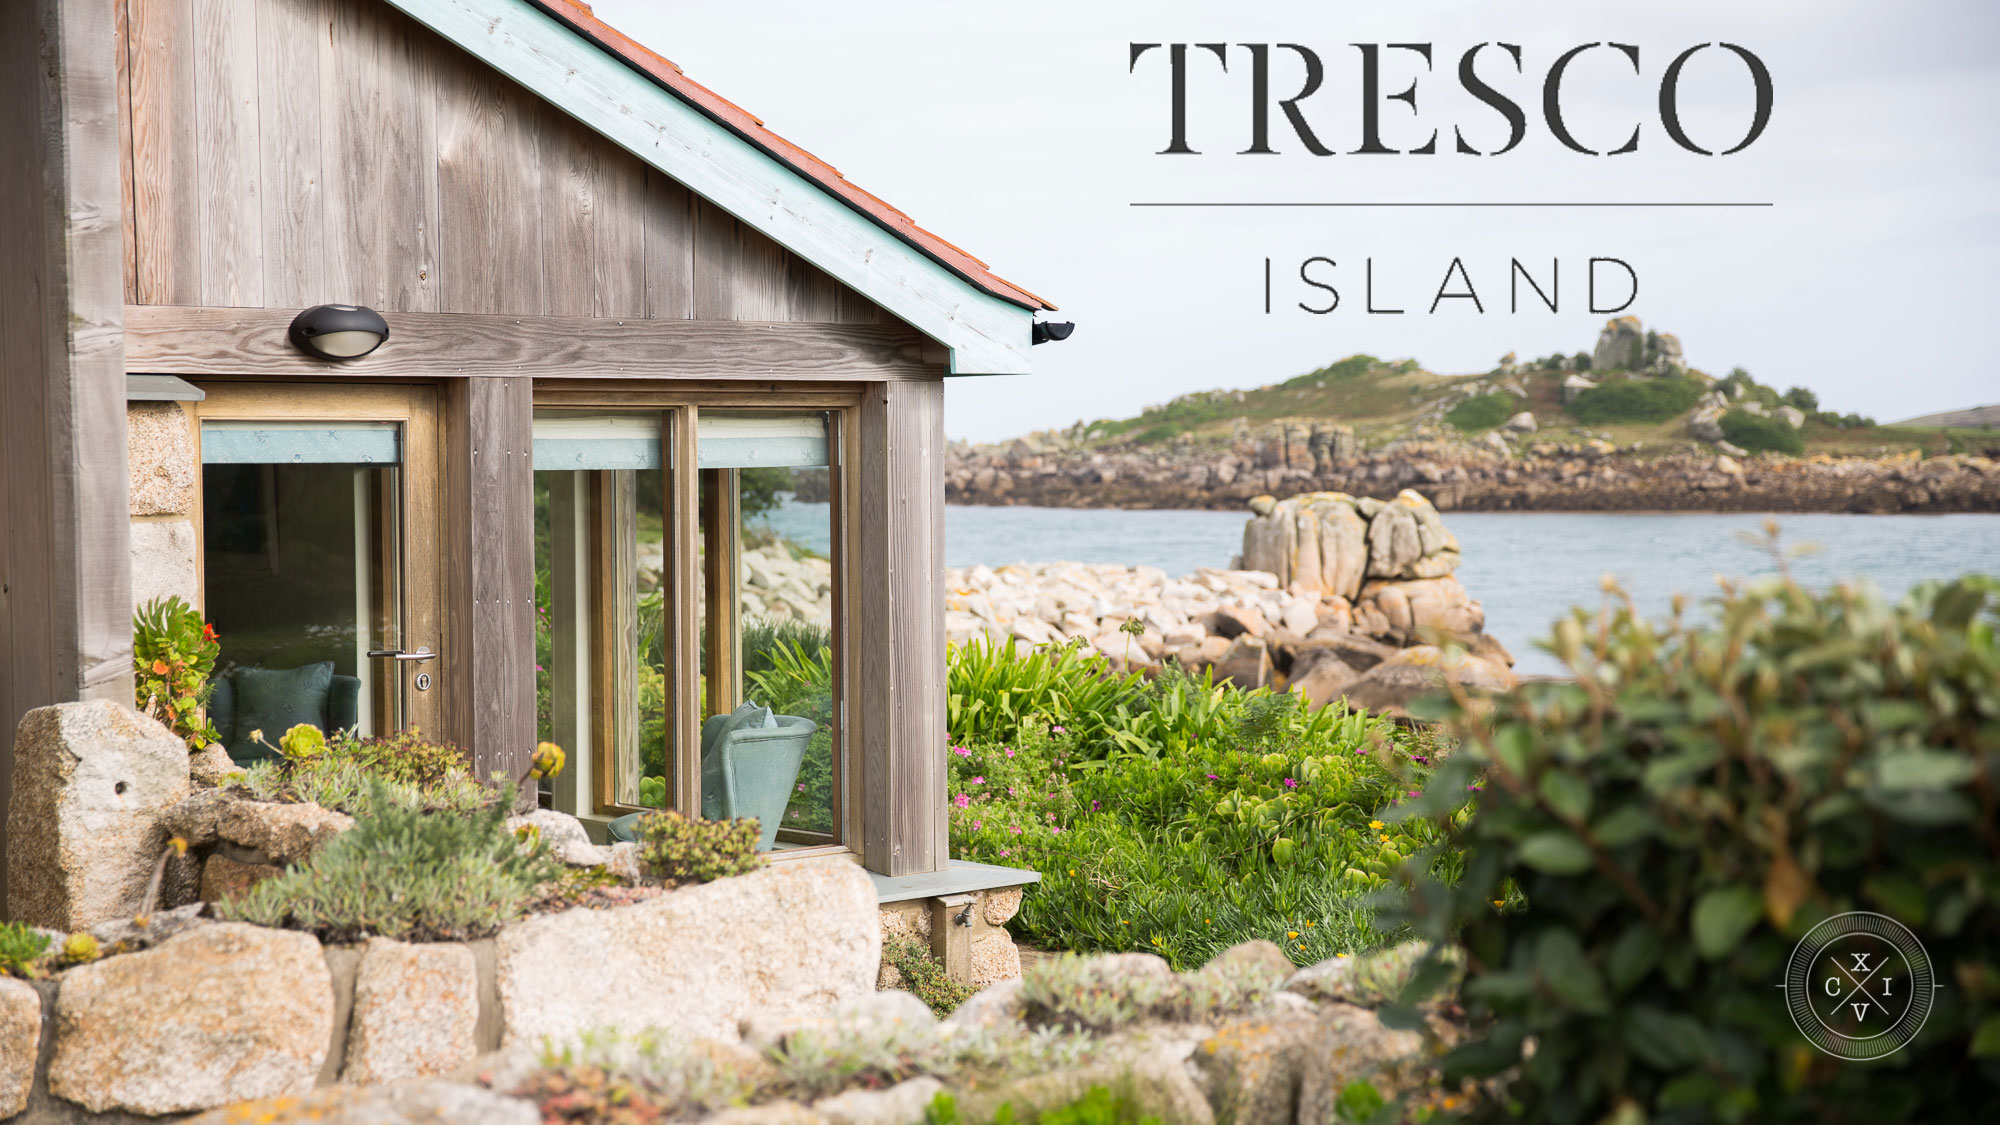 Tresco Island | Isles of Scilly